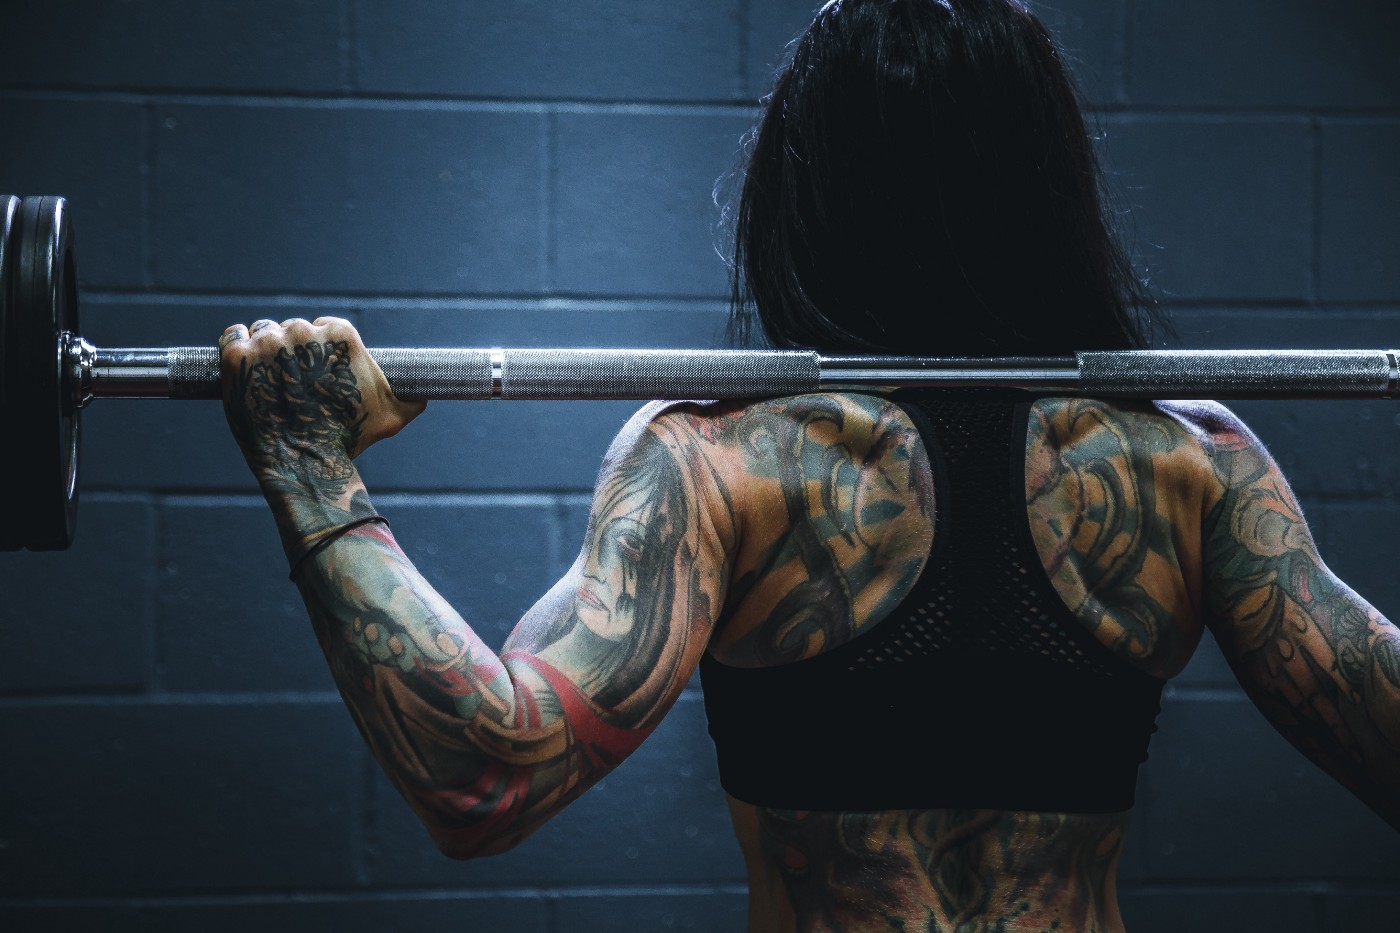 A woman covered in tattoos lifting a barbell with heavy weights on it on her back